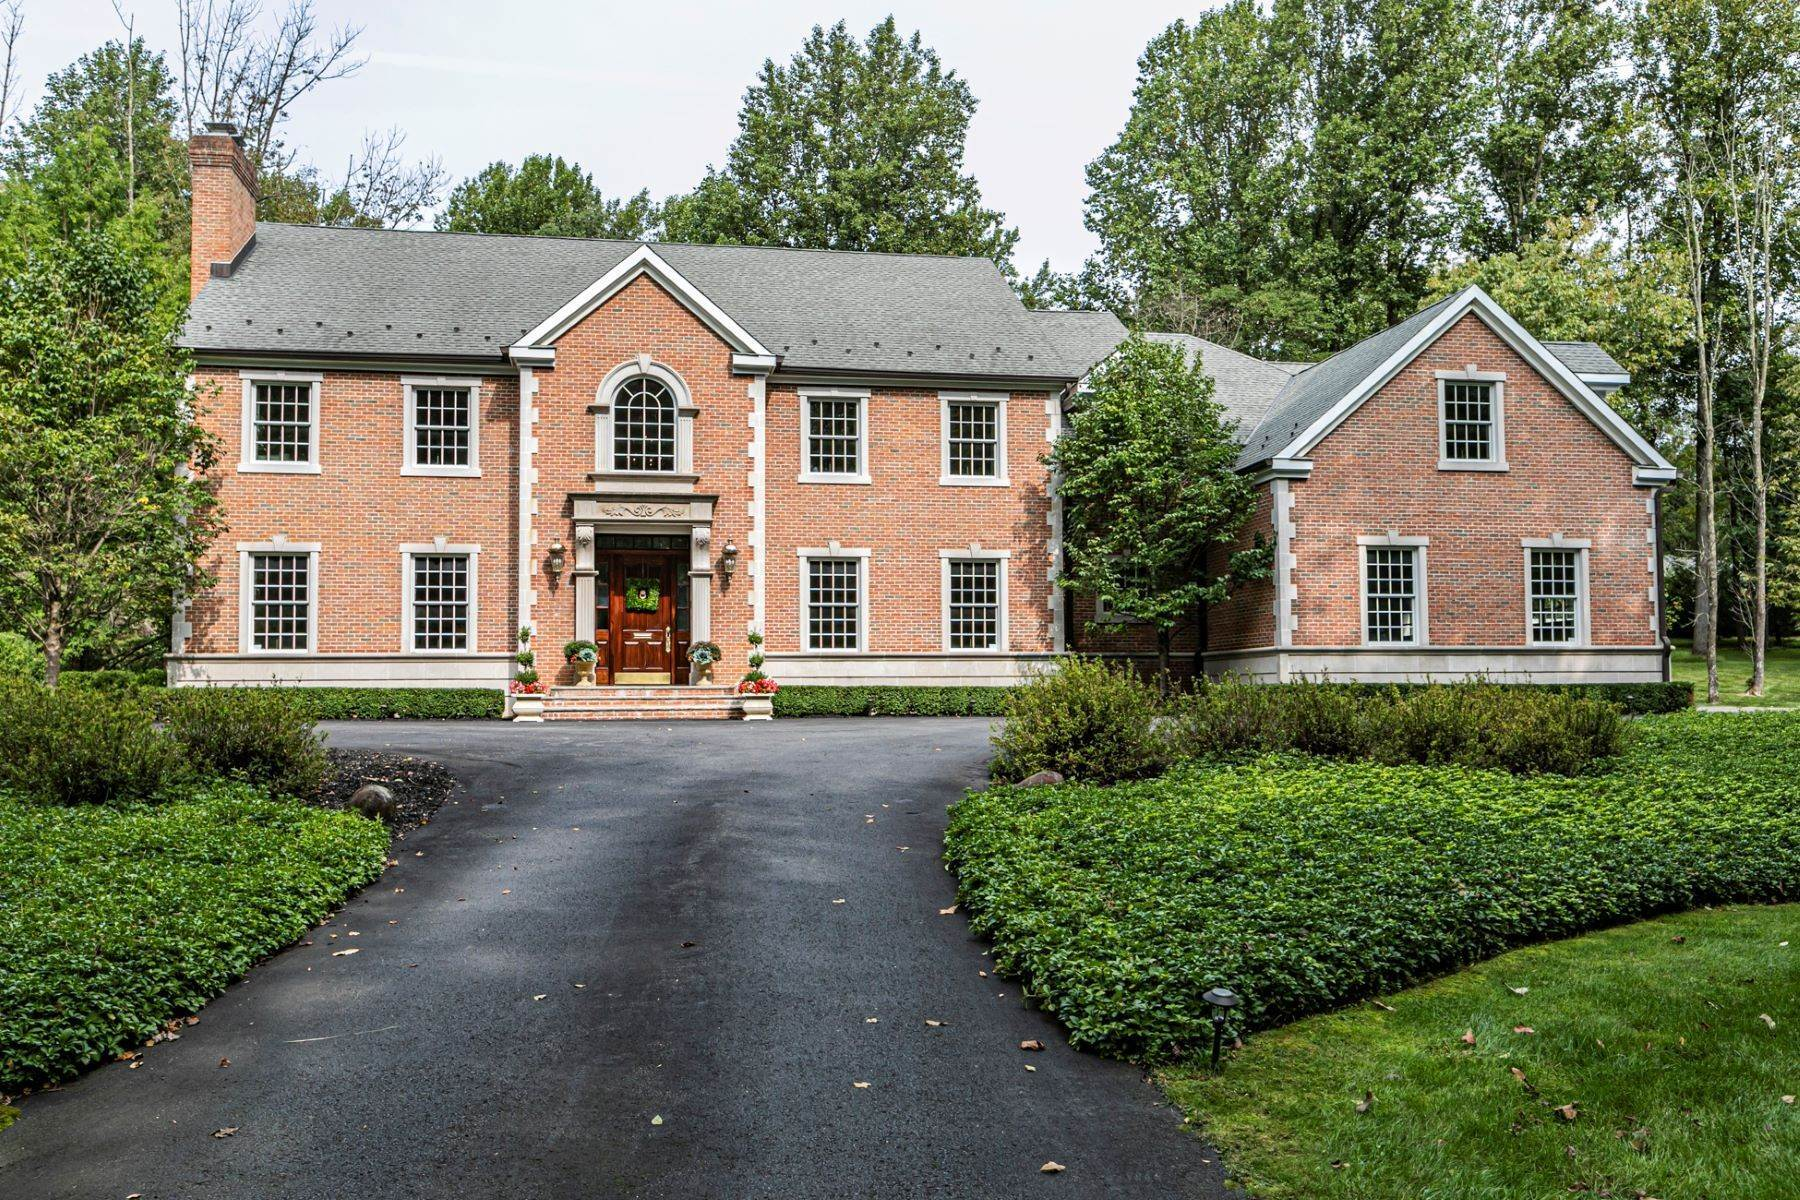 Single Family Homes for Sale at Beautifully Constructed Inside and Out 16 Fredrick Court, Princeton, New Jersey 08540 United States